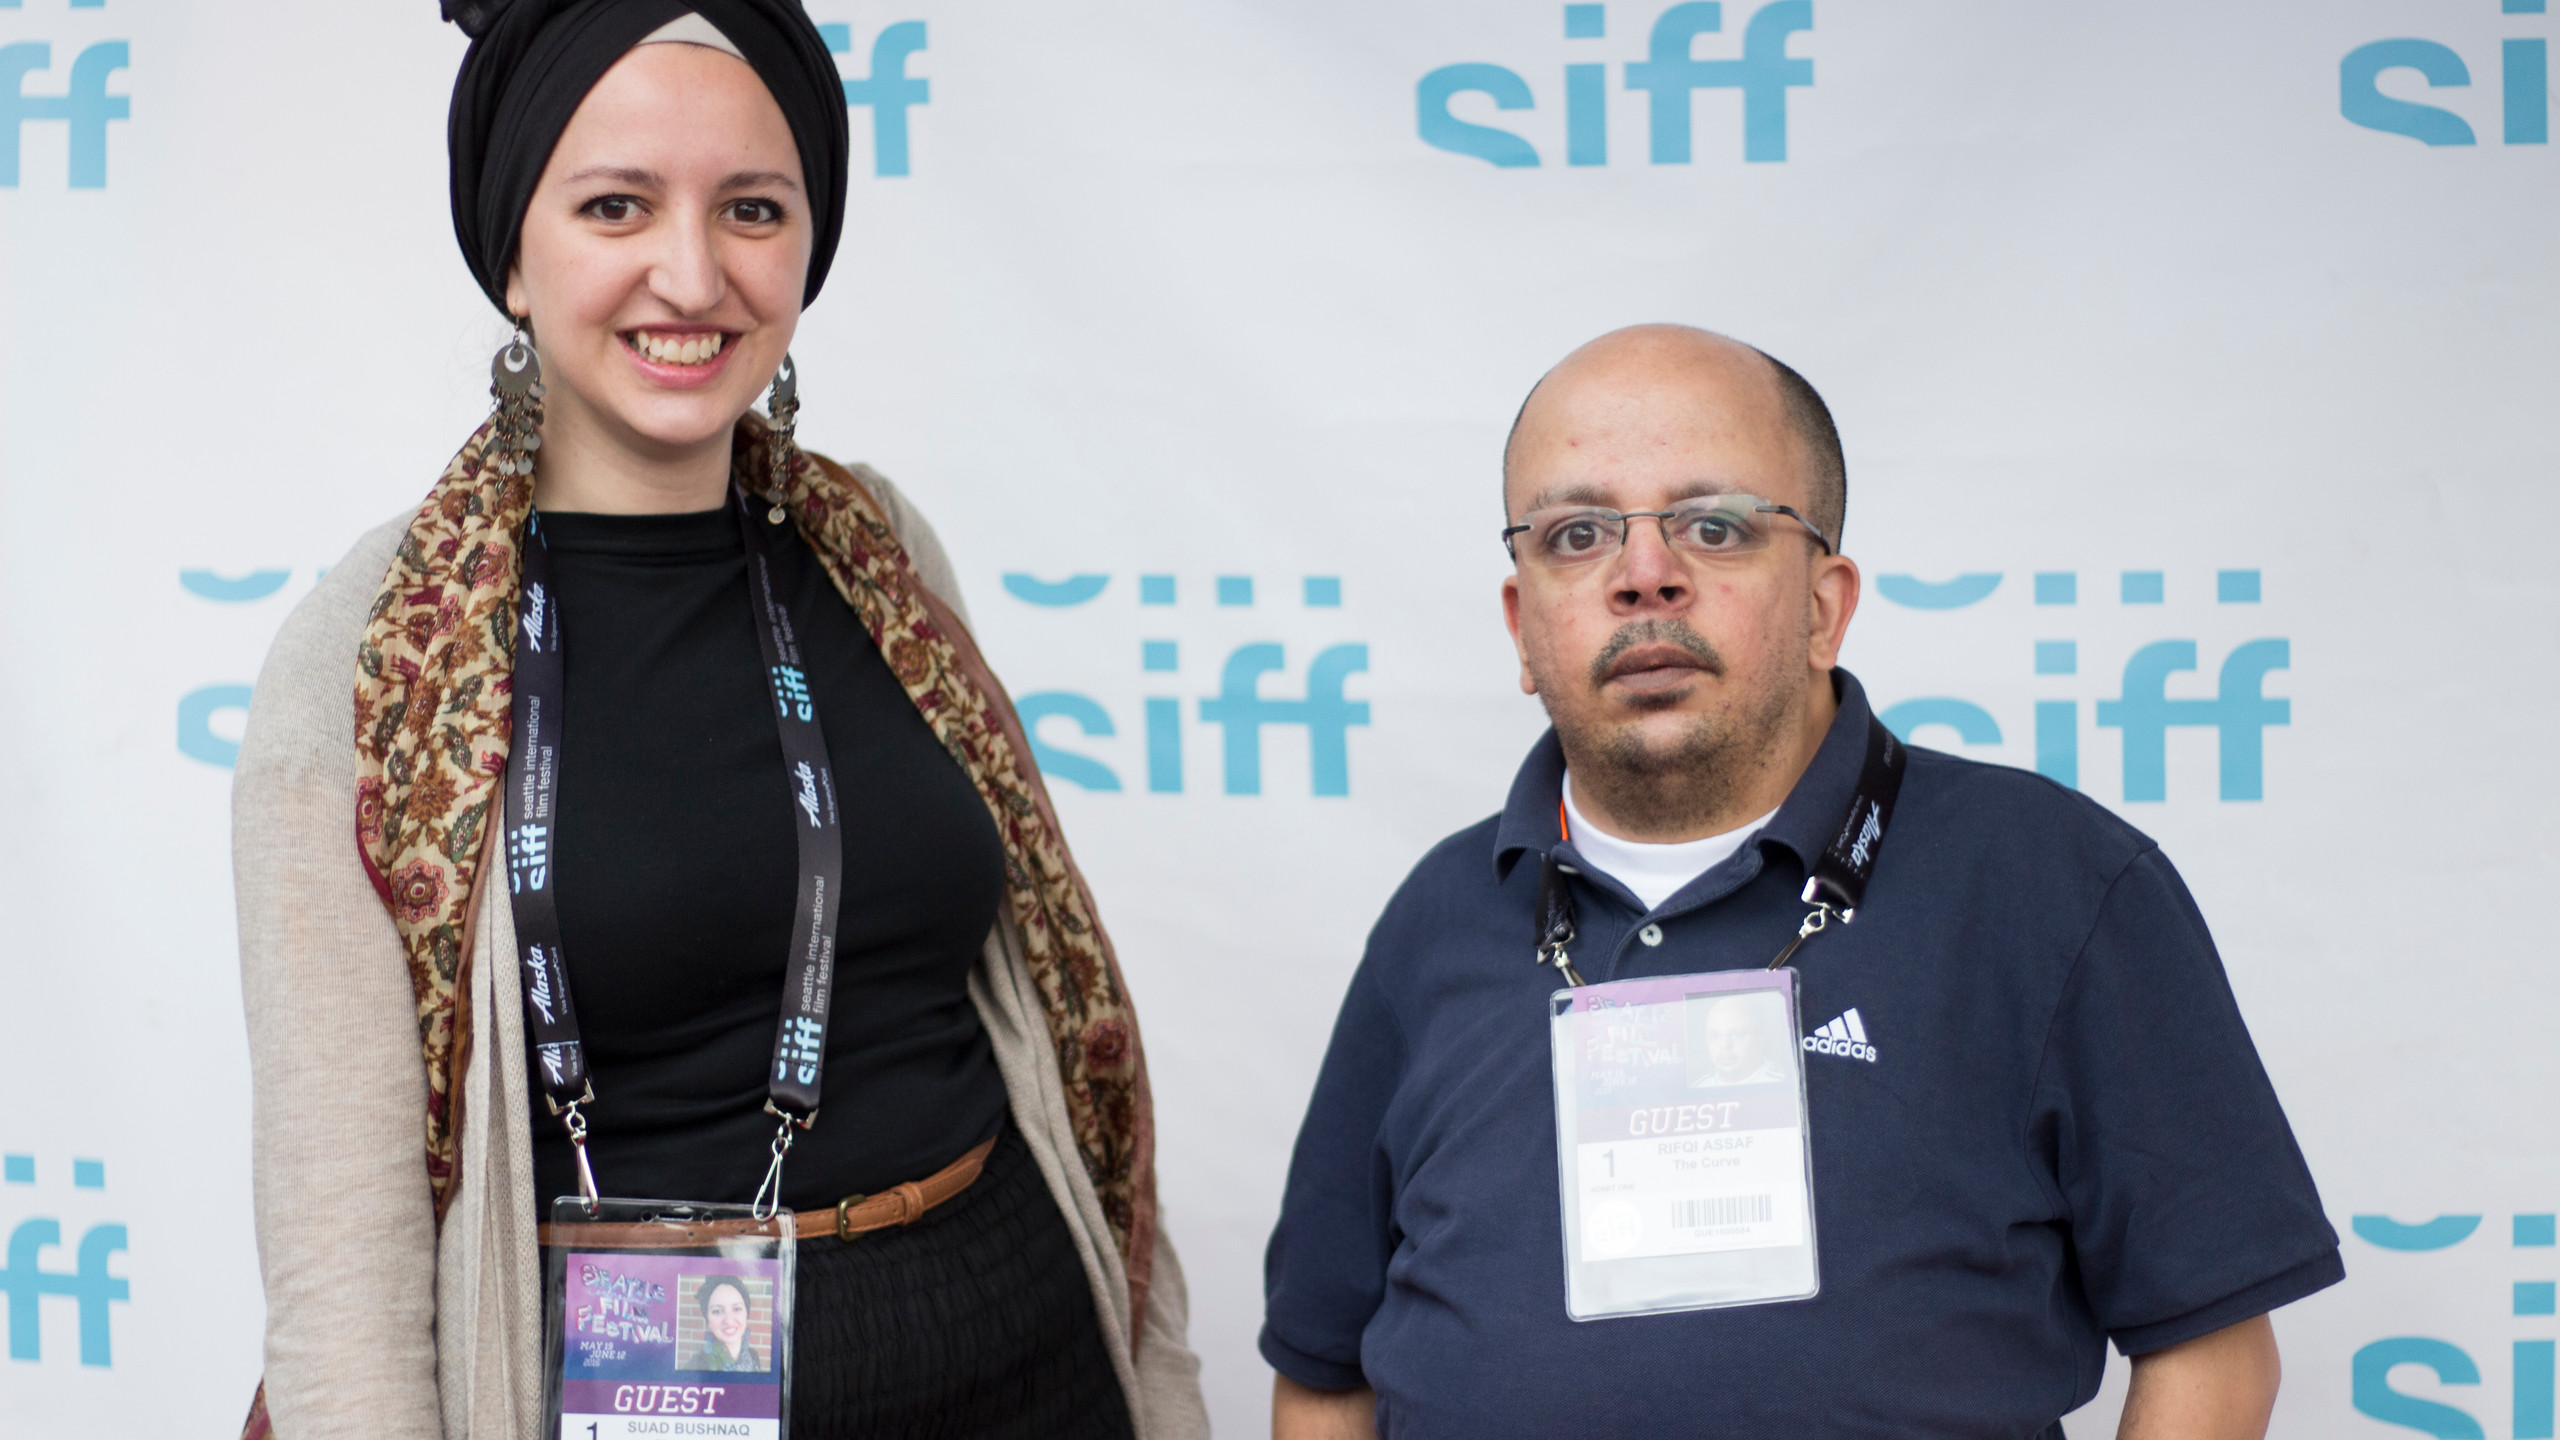 siff2016--the-curve--june-7-2016_27306802980_o